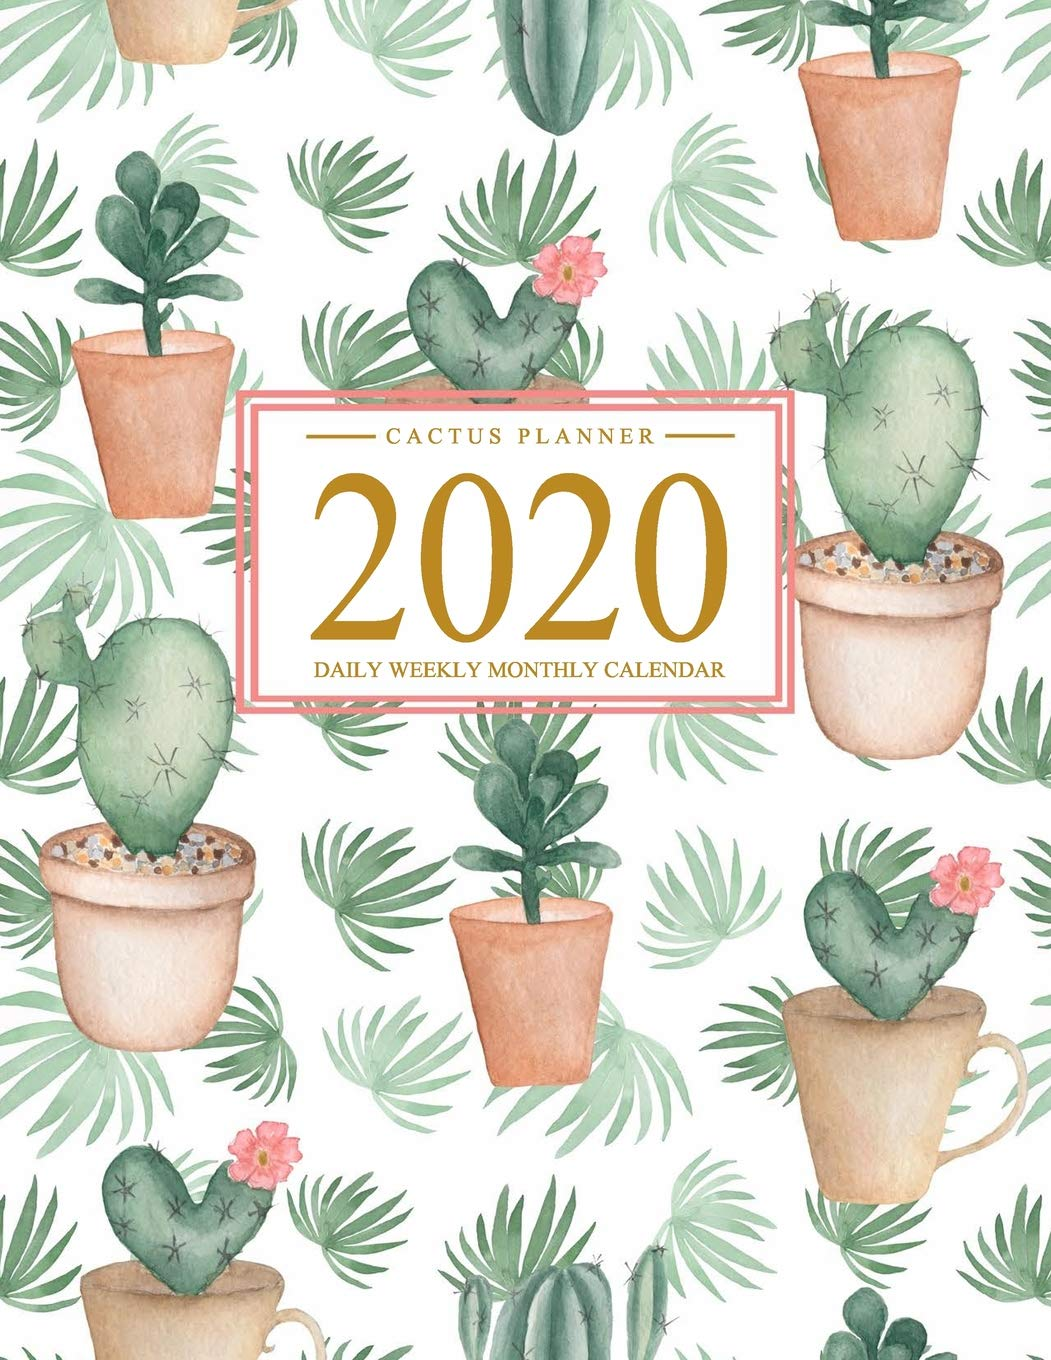 Cactus Cup 2020.Amazon Com Cactus Planner 2020 Daily Weekly Monthly